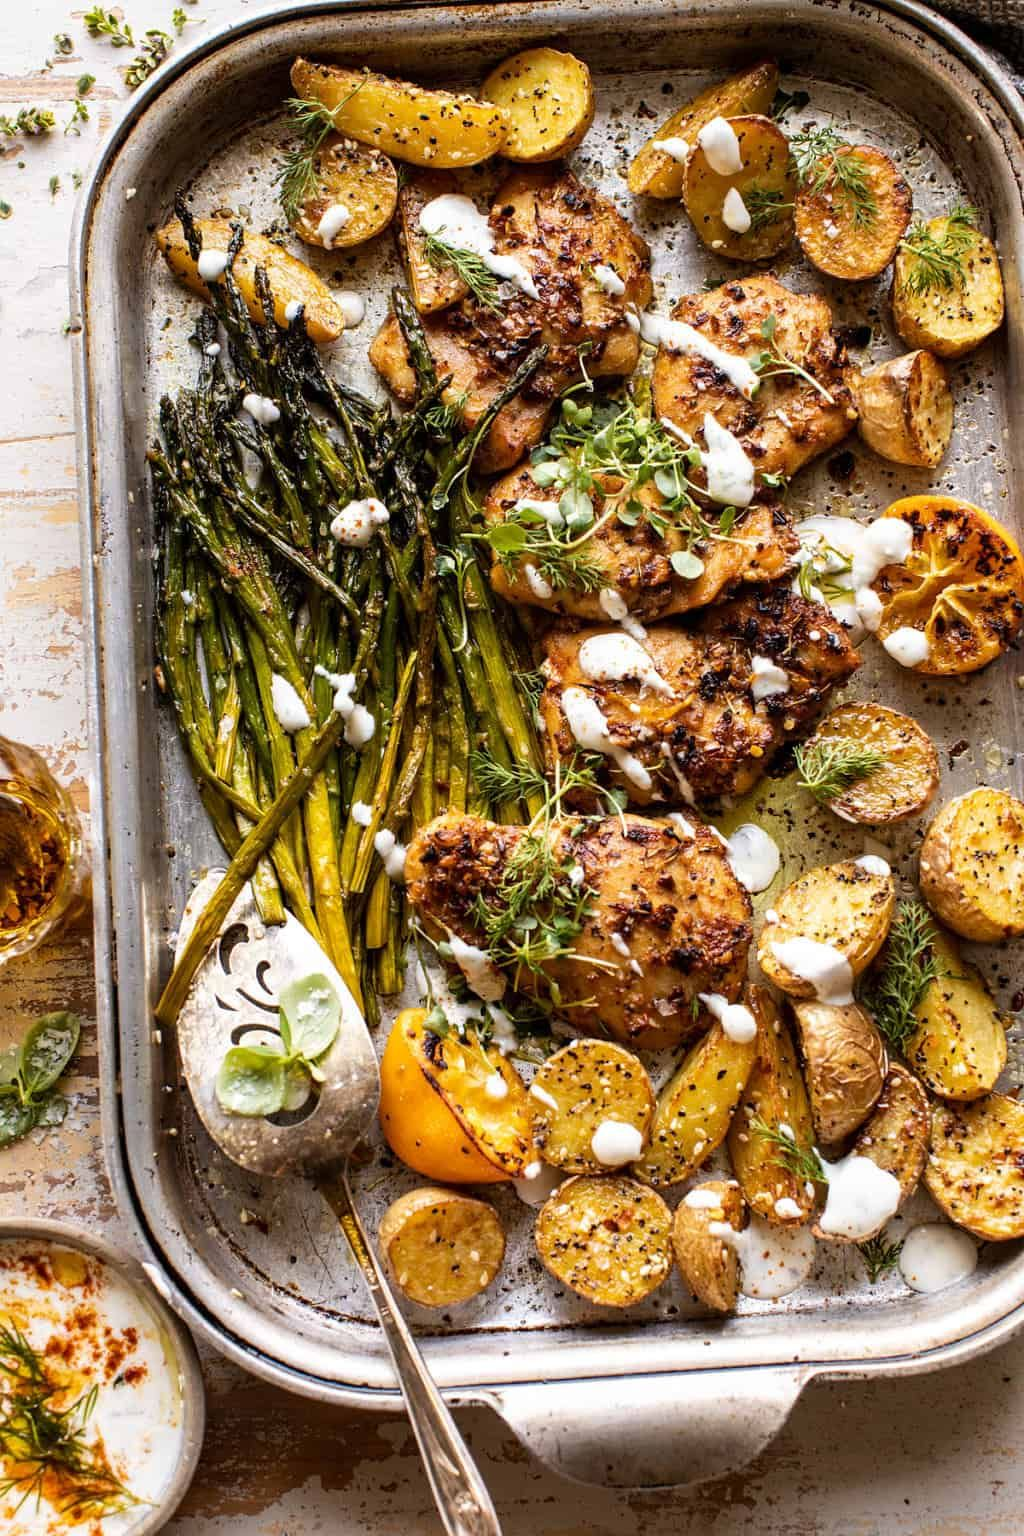 Sheet Pan Lemon Rosemary Dijon Chicken and Potatoe